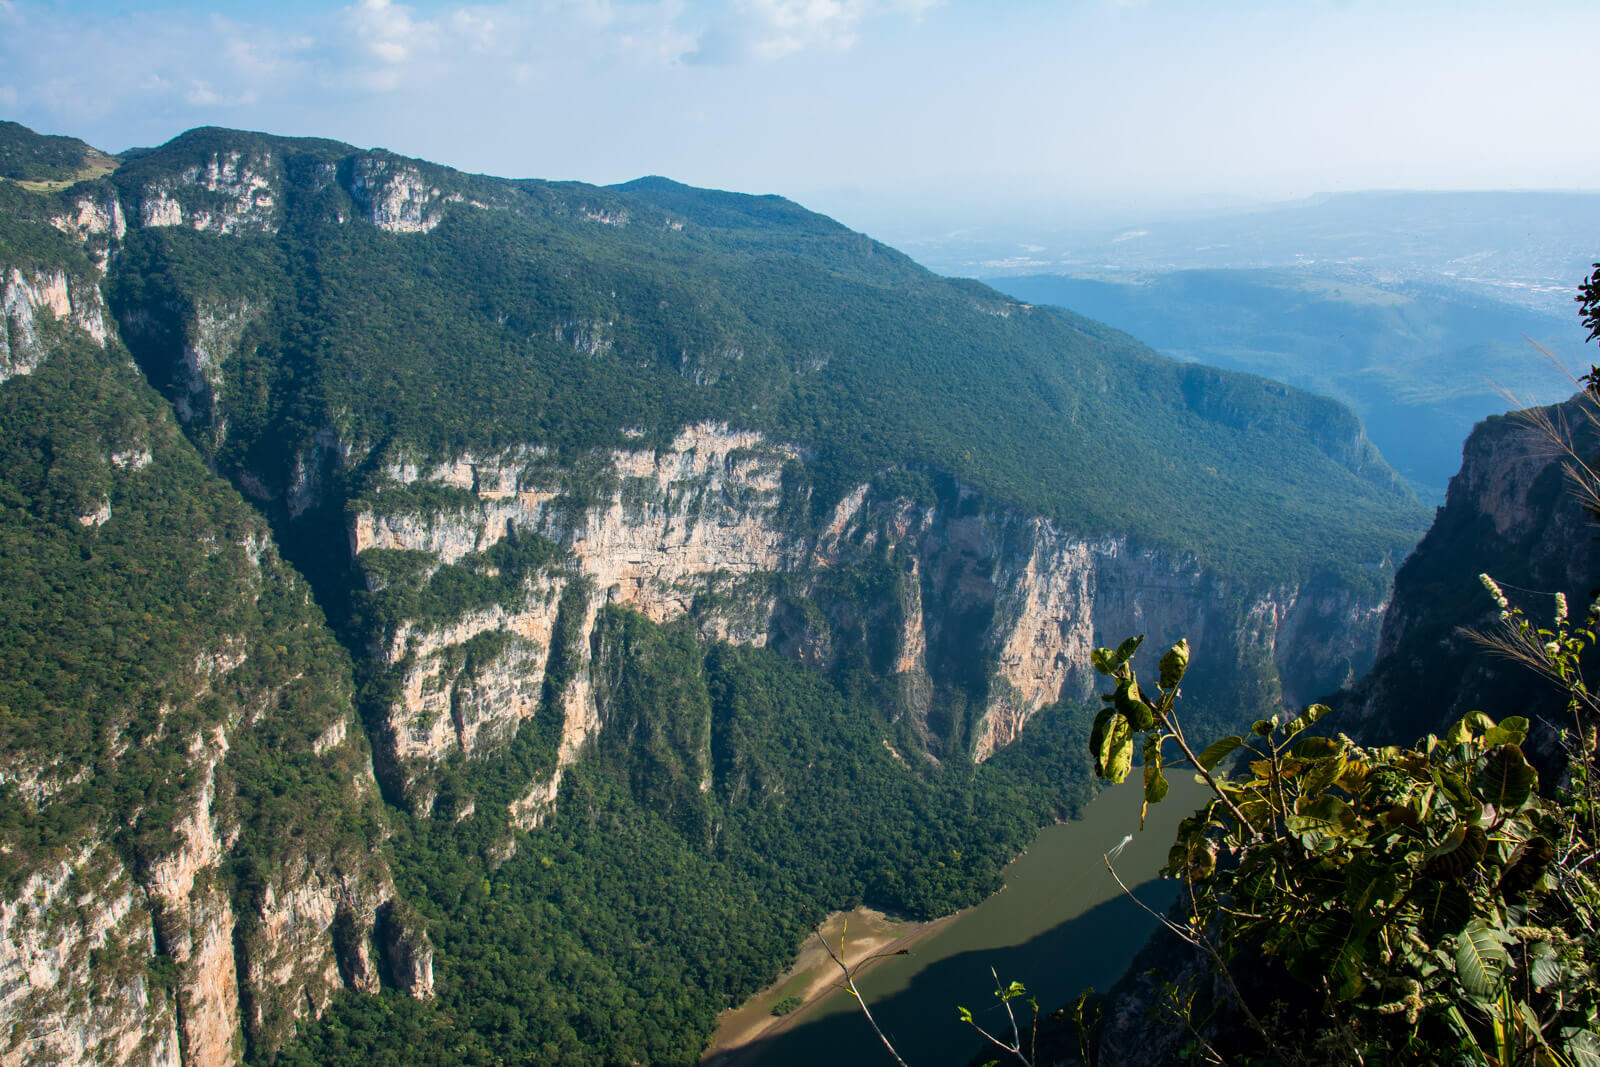 Panoramic view of the Sumidero Canyon from one of the viewpoints